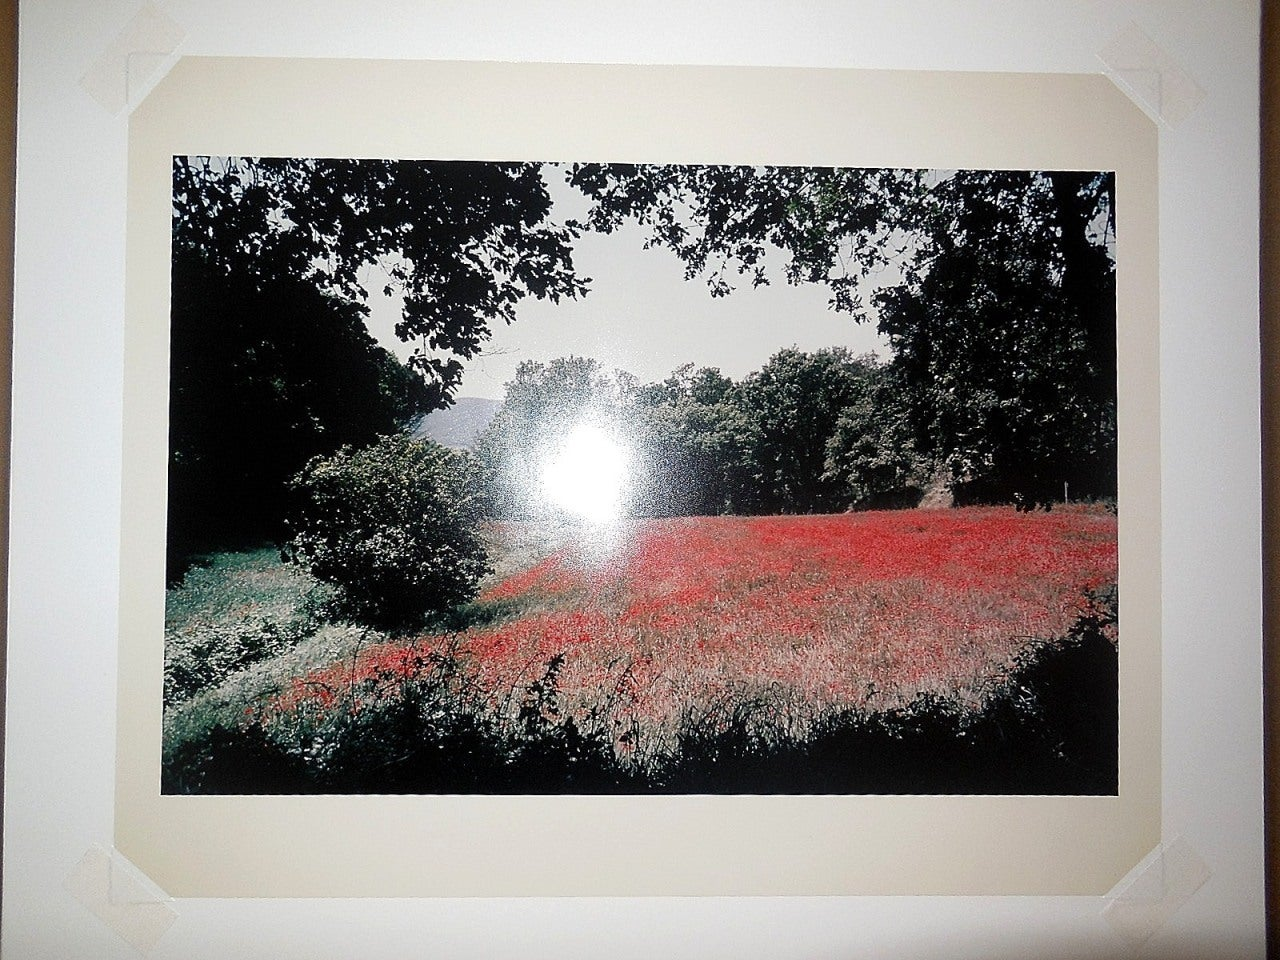 Tuscany, Field of Poppies, 1996 Large Vintage Color Photograph C Print Signed For Sale 2